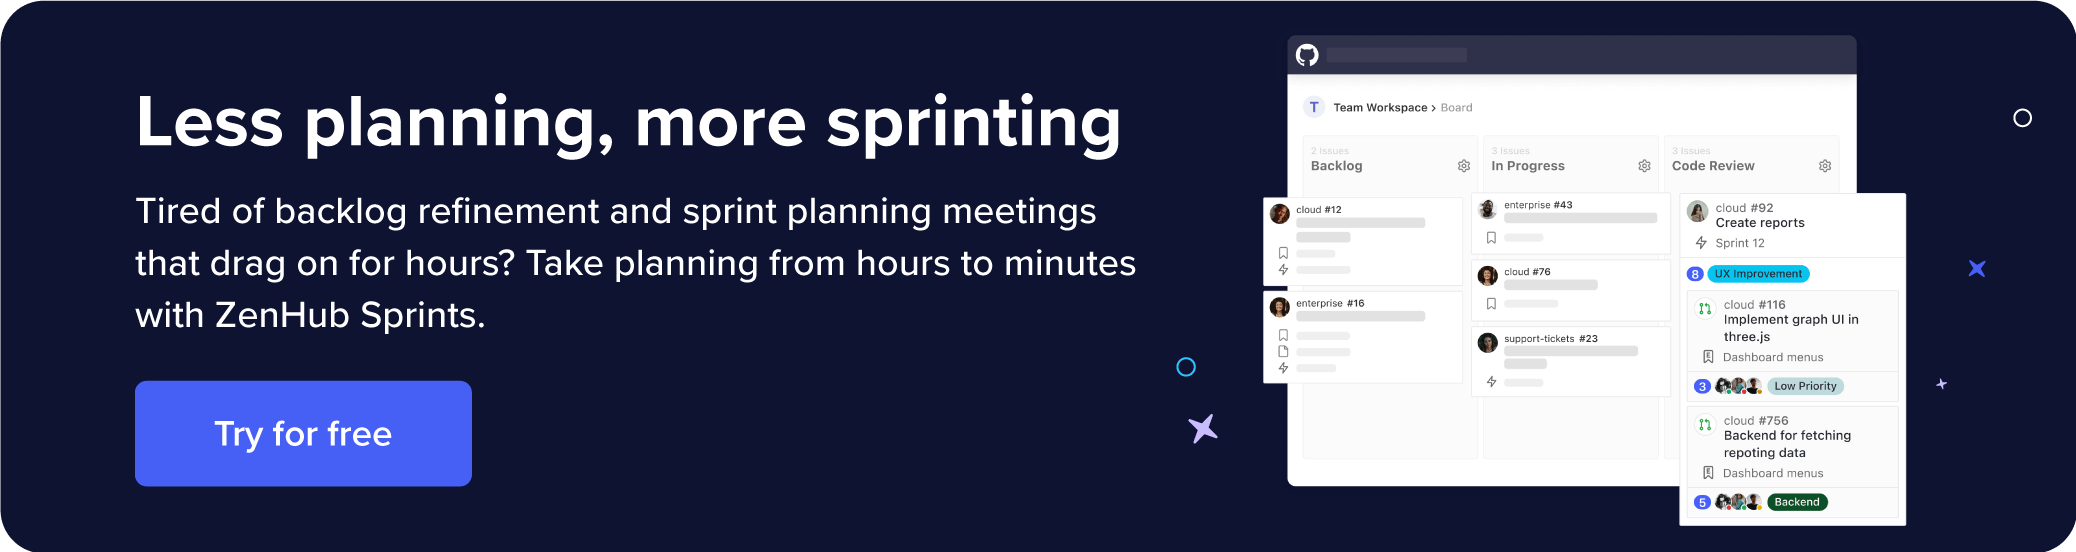 Goes over how to take sprint planning from hours to minutes with ZenHub Sprints.